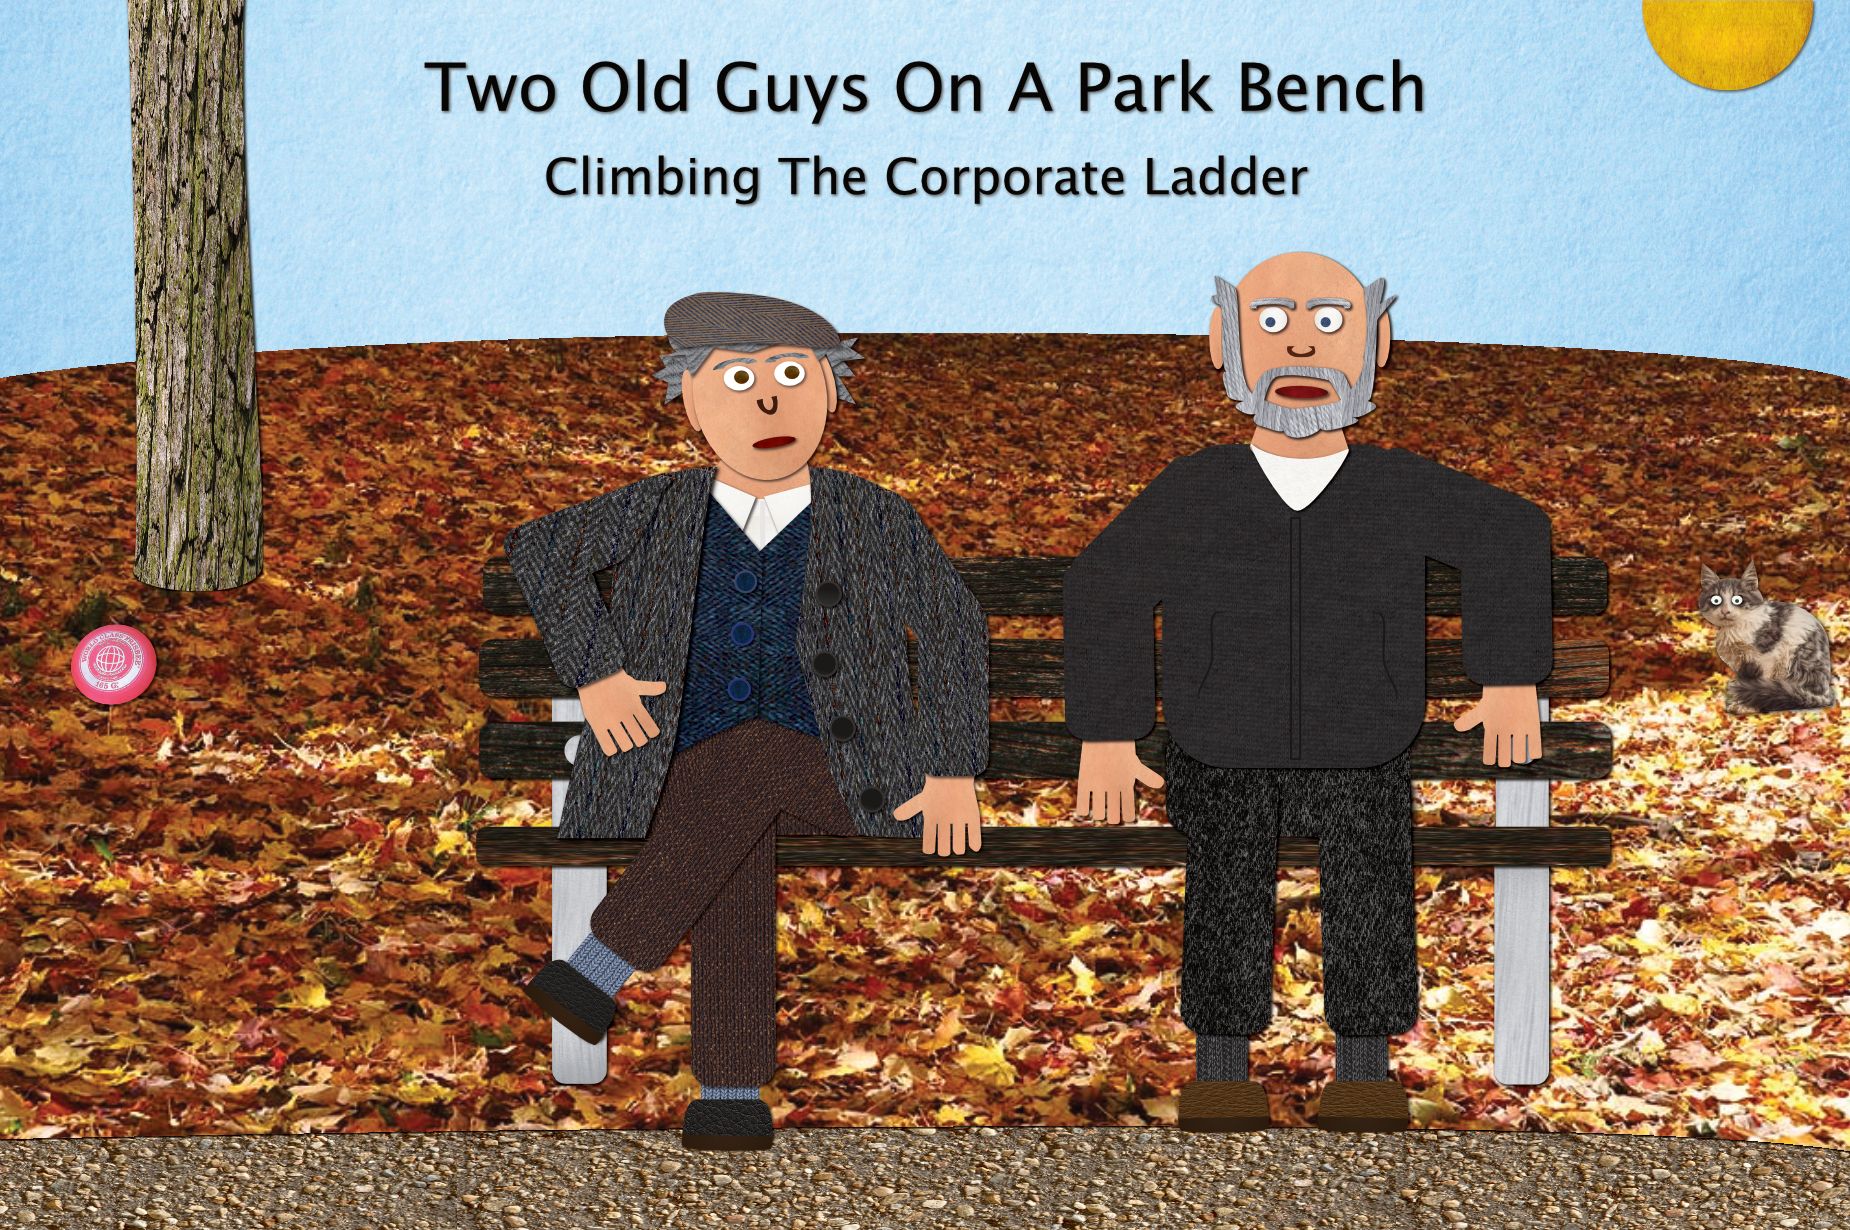 Two old guys on a park bench.